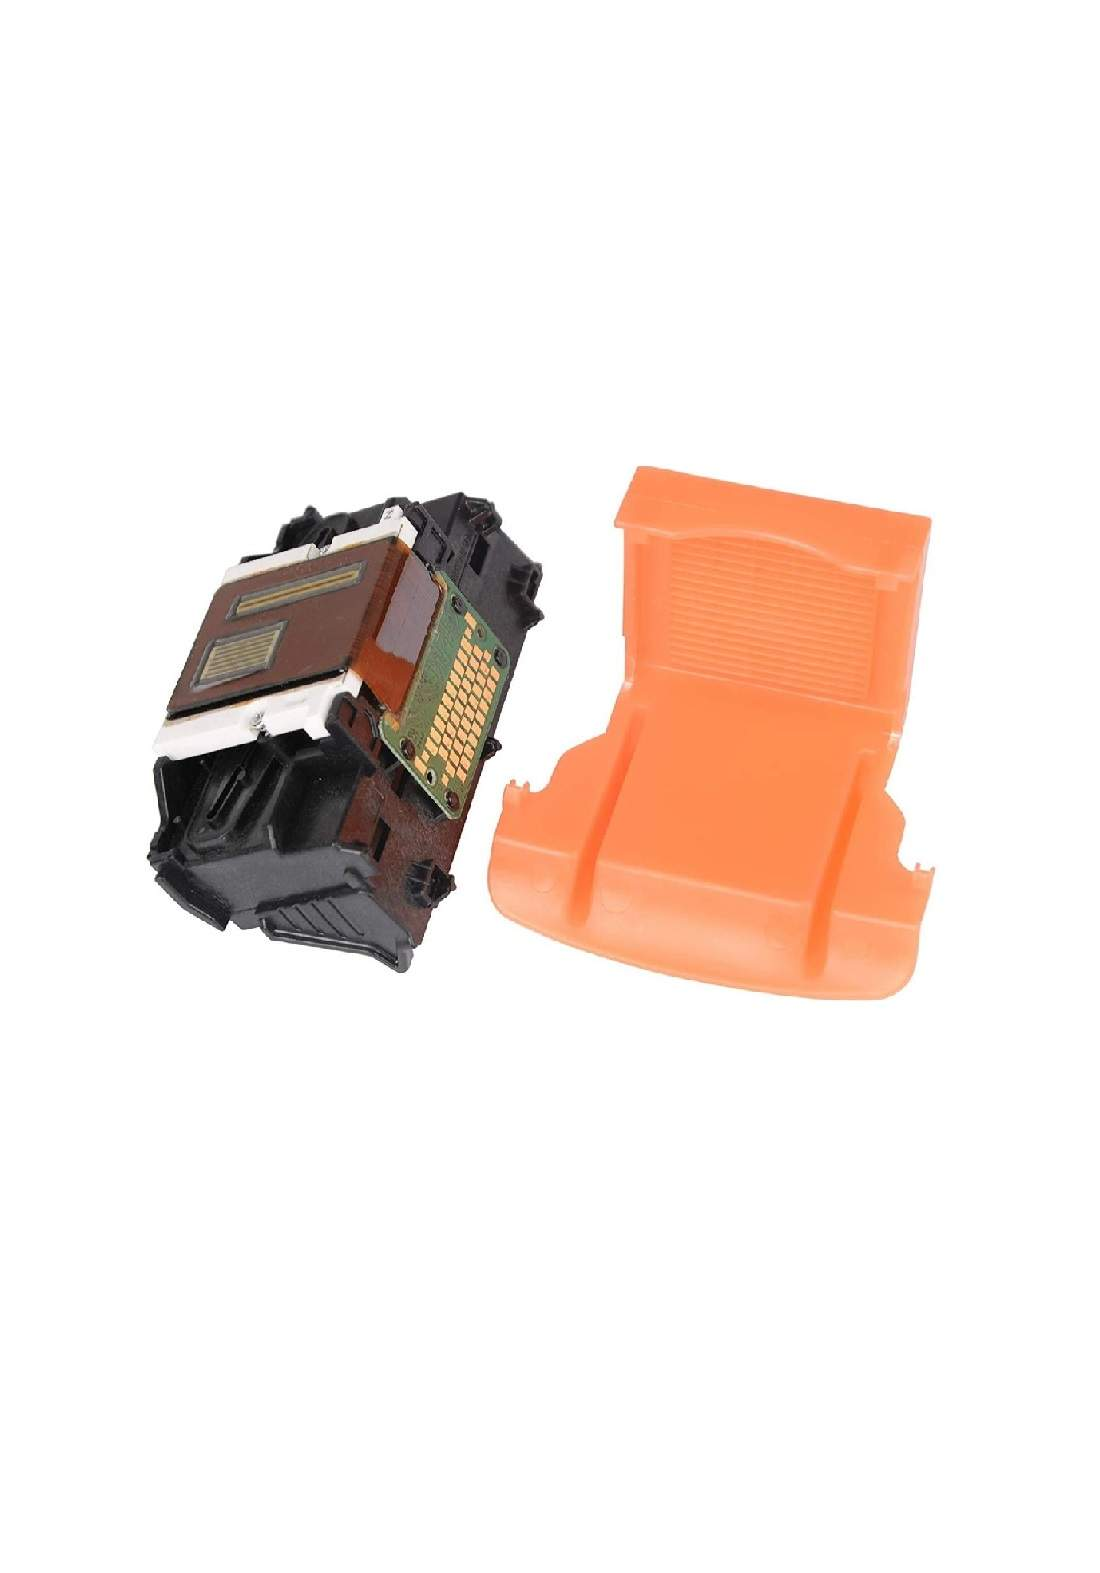 Printhead QY6-0089-000 For Canon